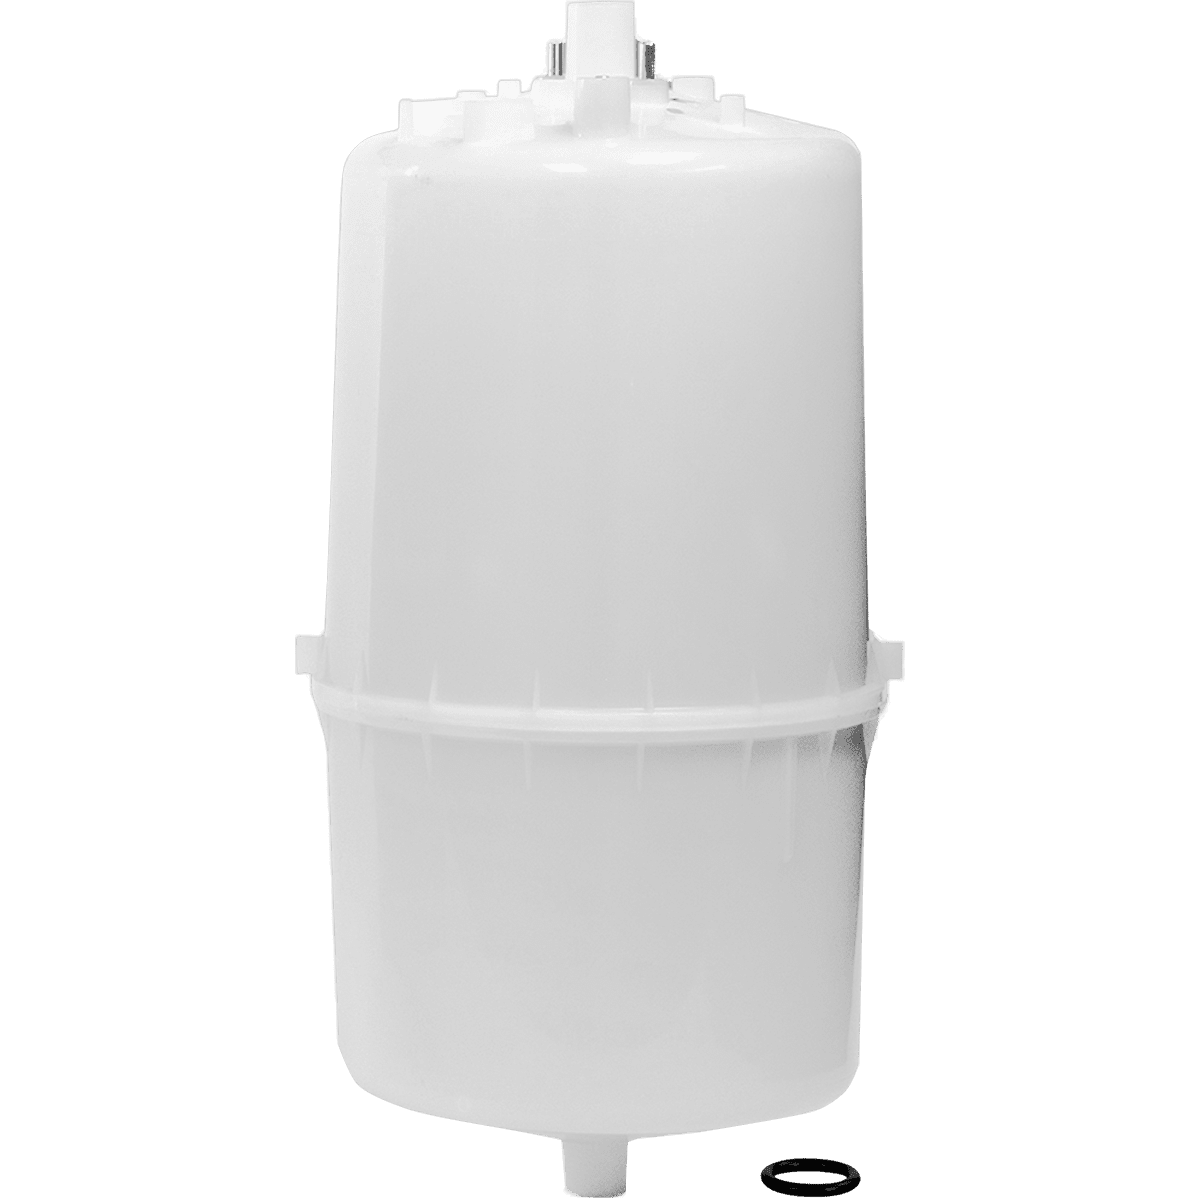 Aprilaire 303aac Steam Humidifier Cylinder (fits Nortec® 303)